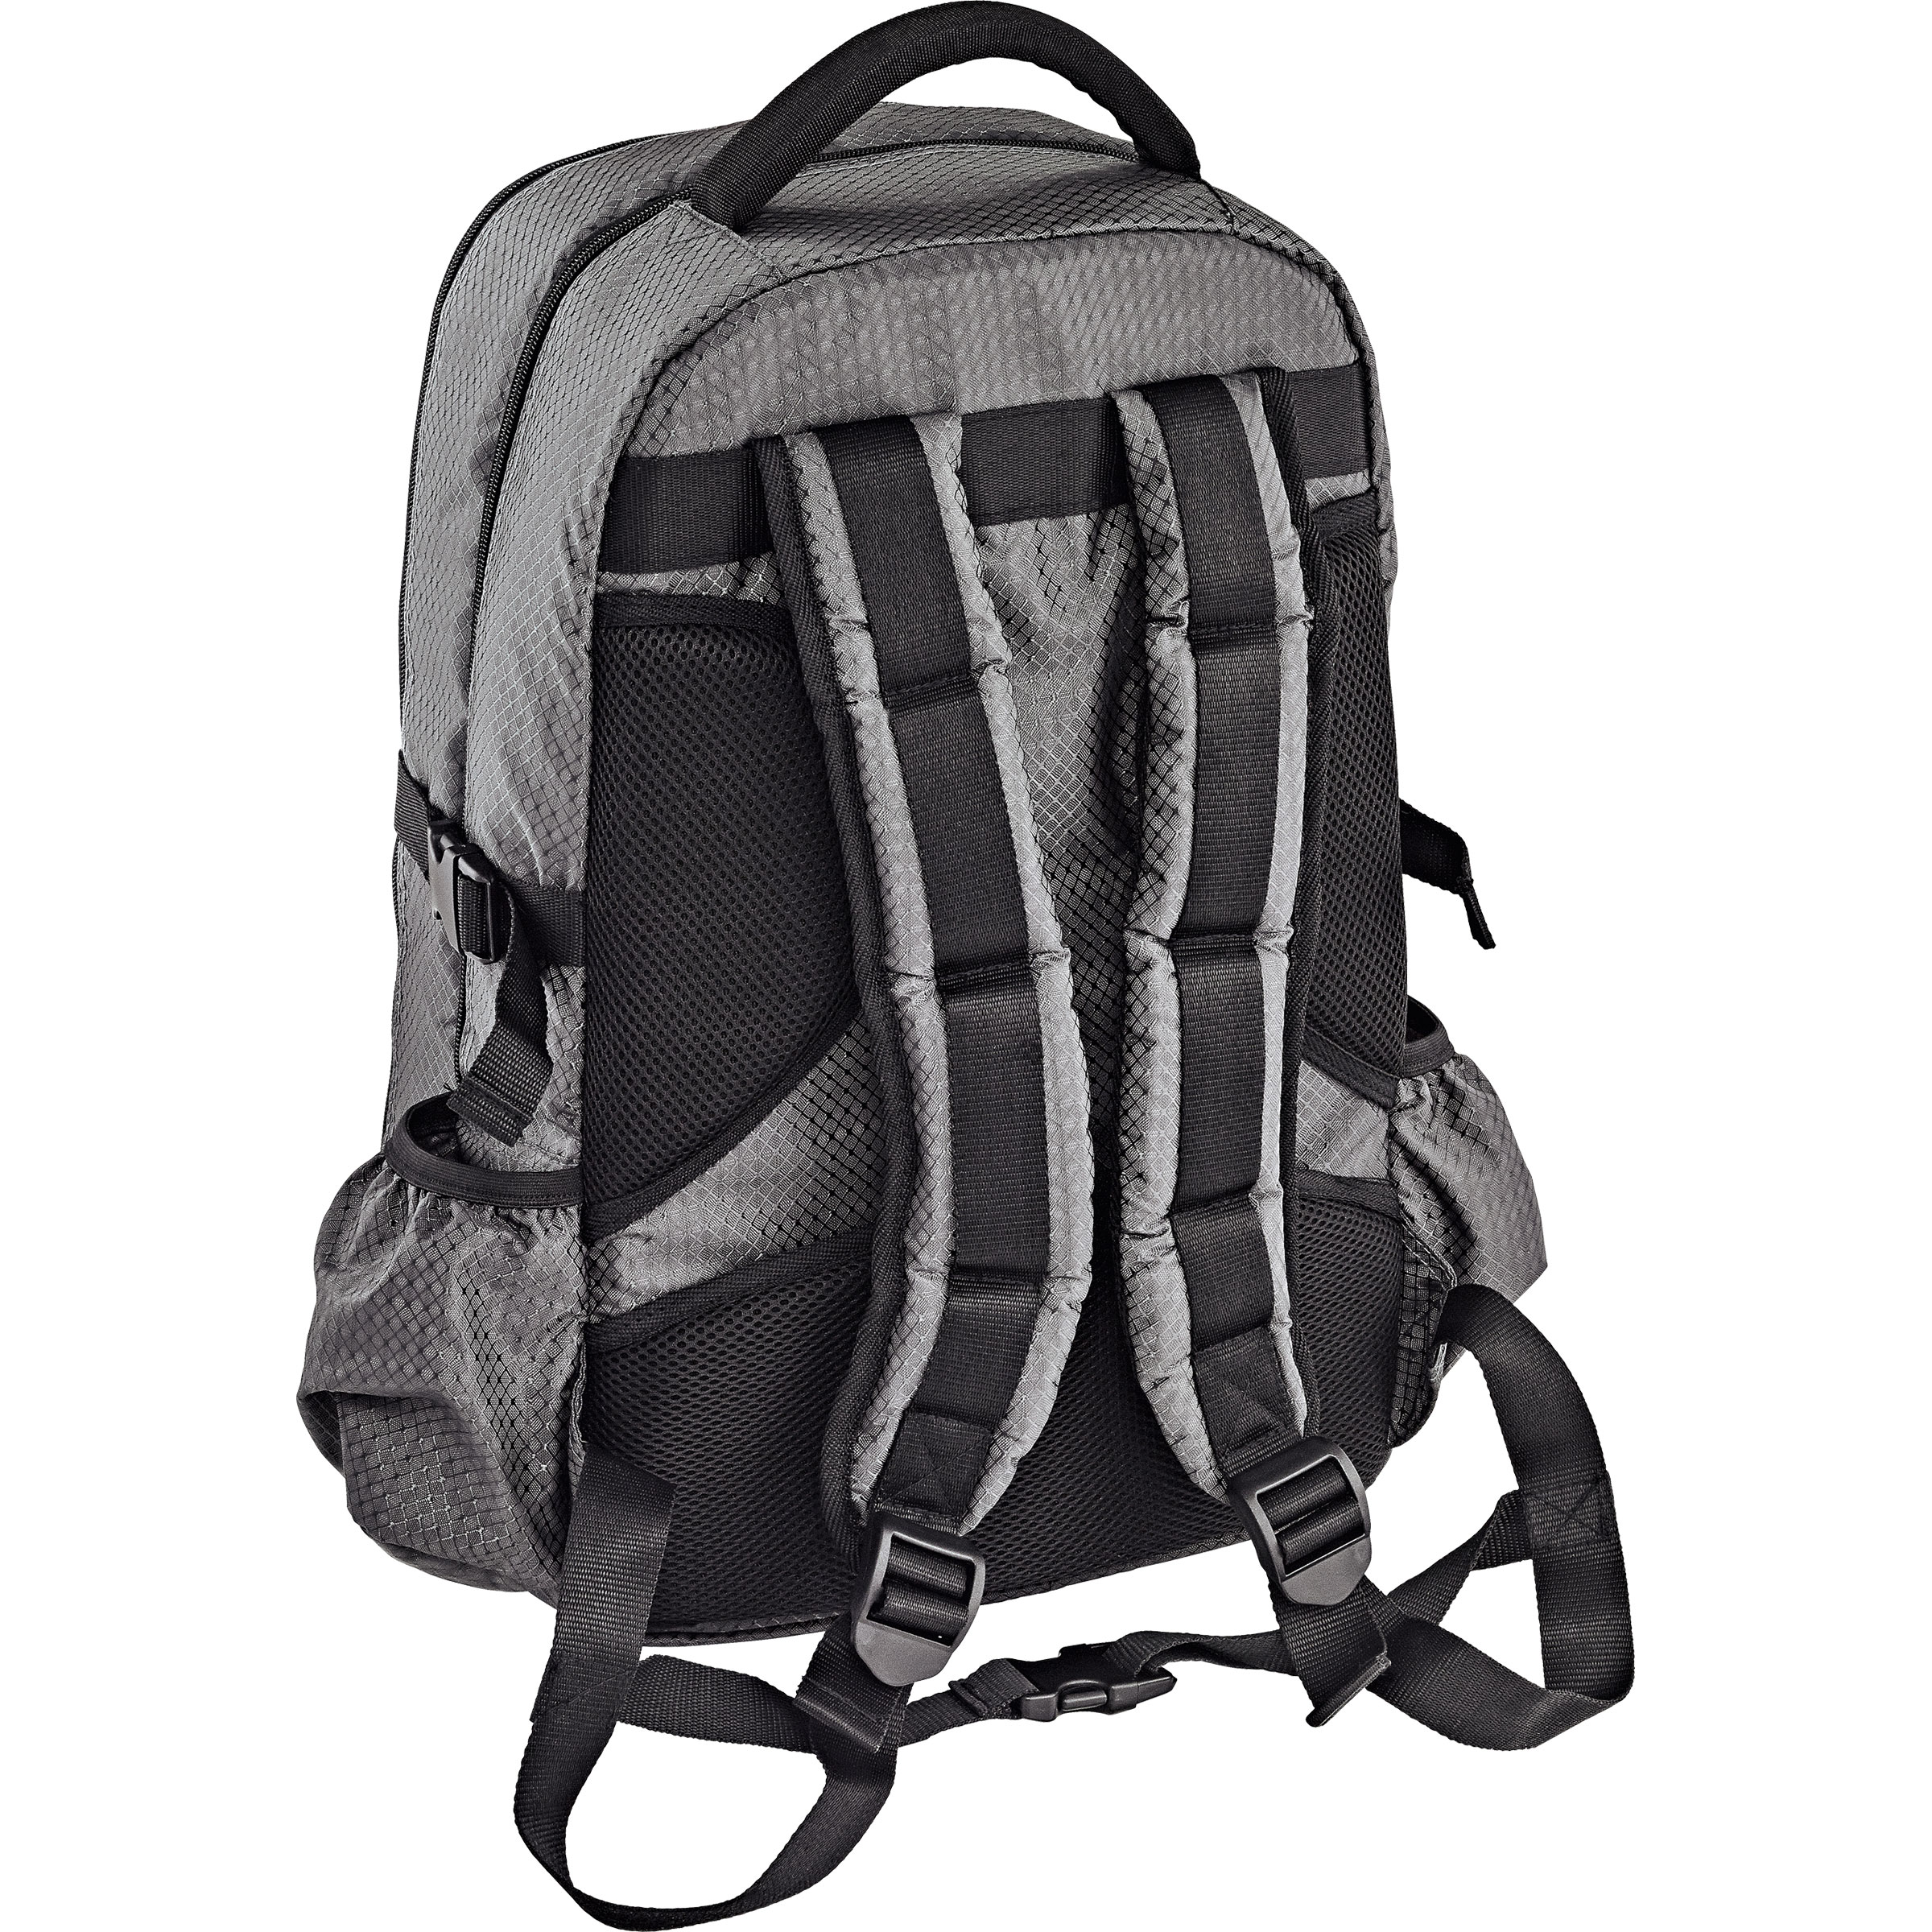 Meinl Percussion Backpack